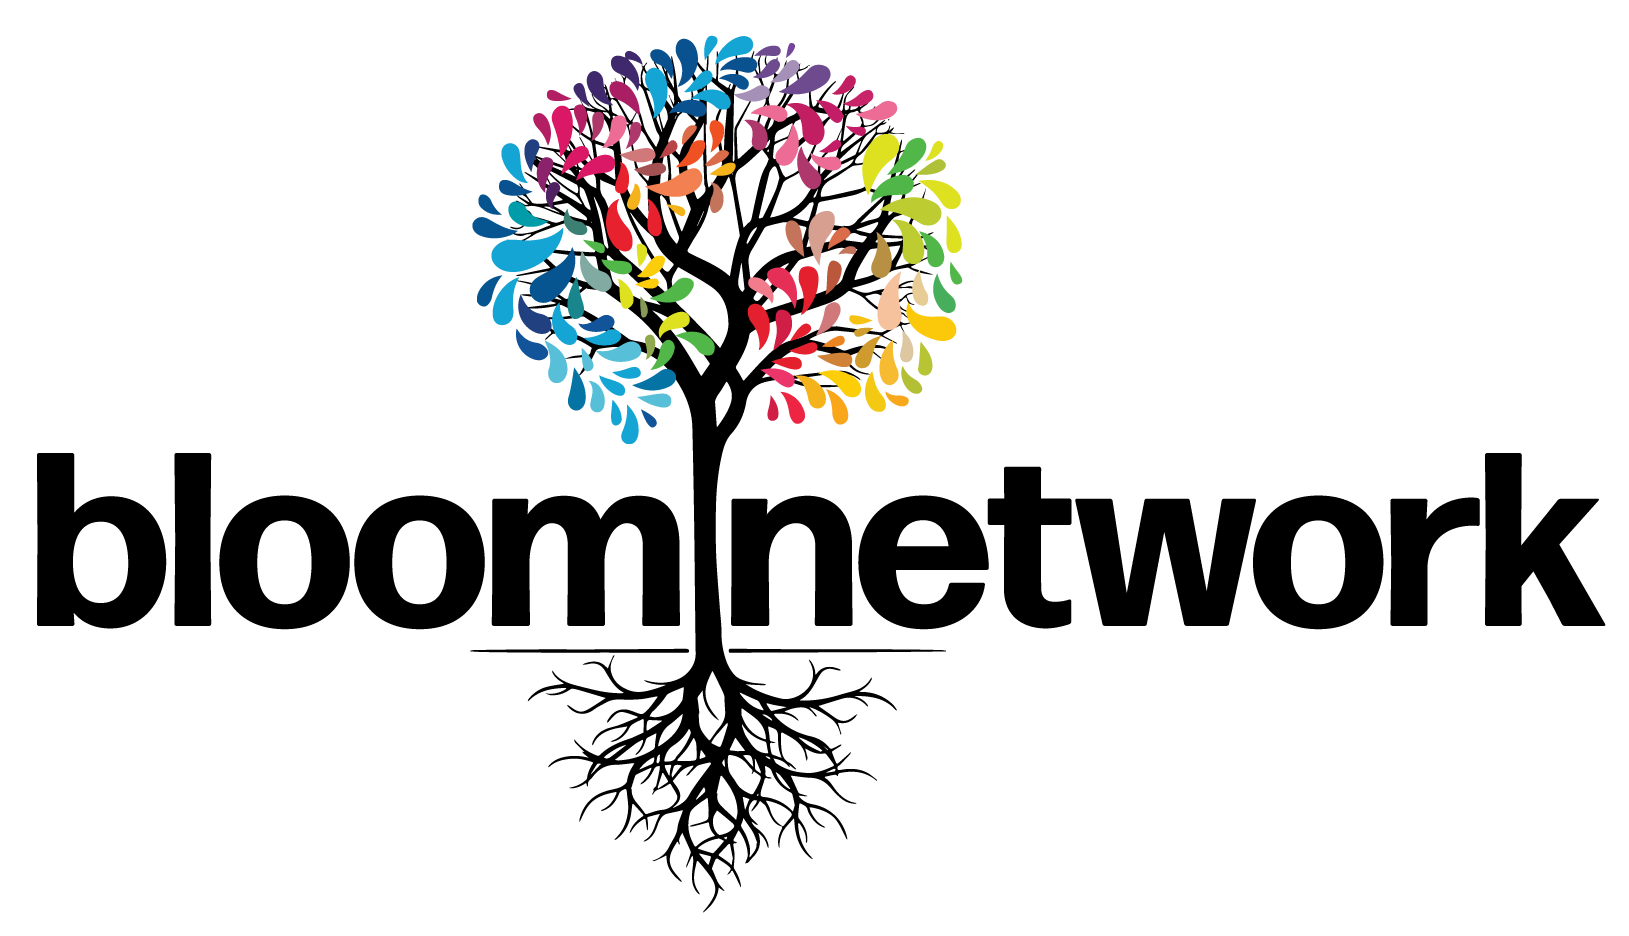 Bloom-Netwok-Logo-with-Text---2000-x-1257-1.png